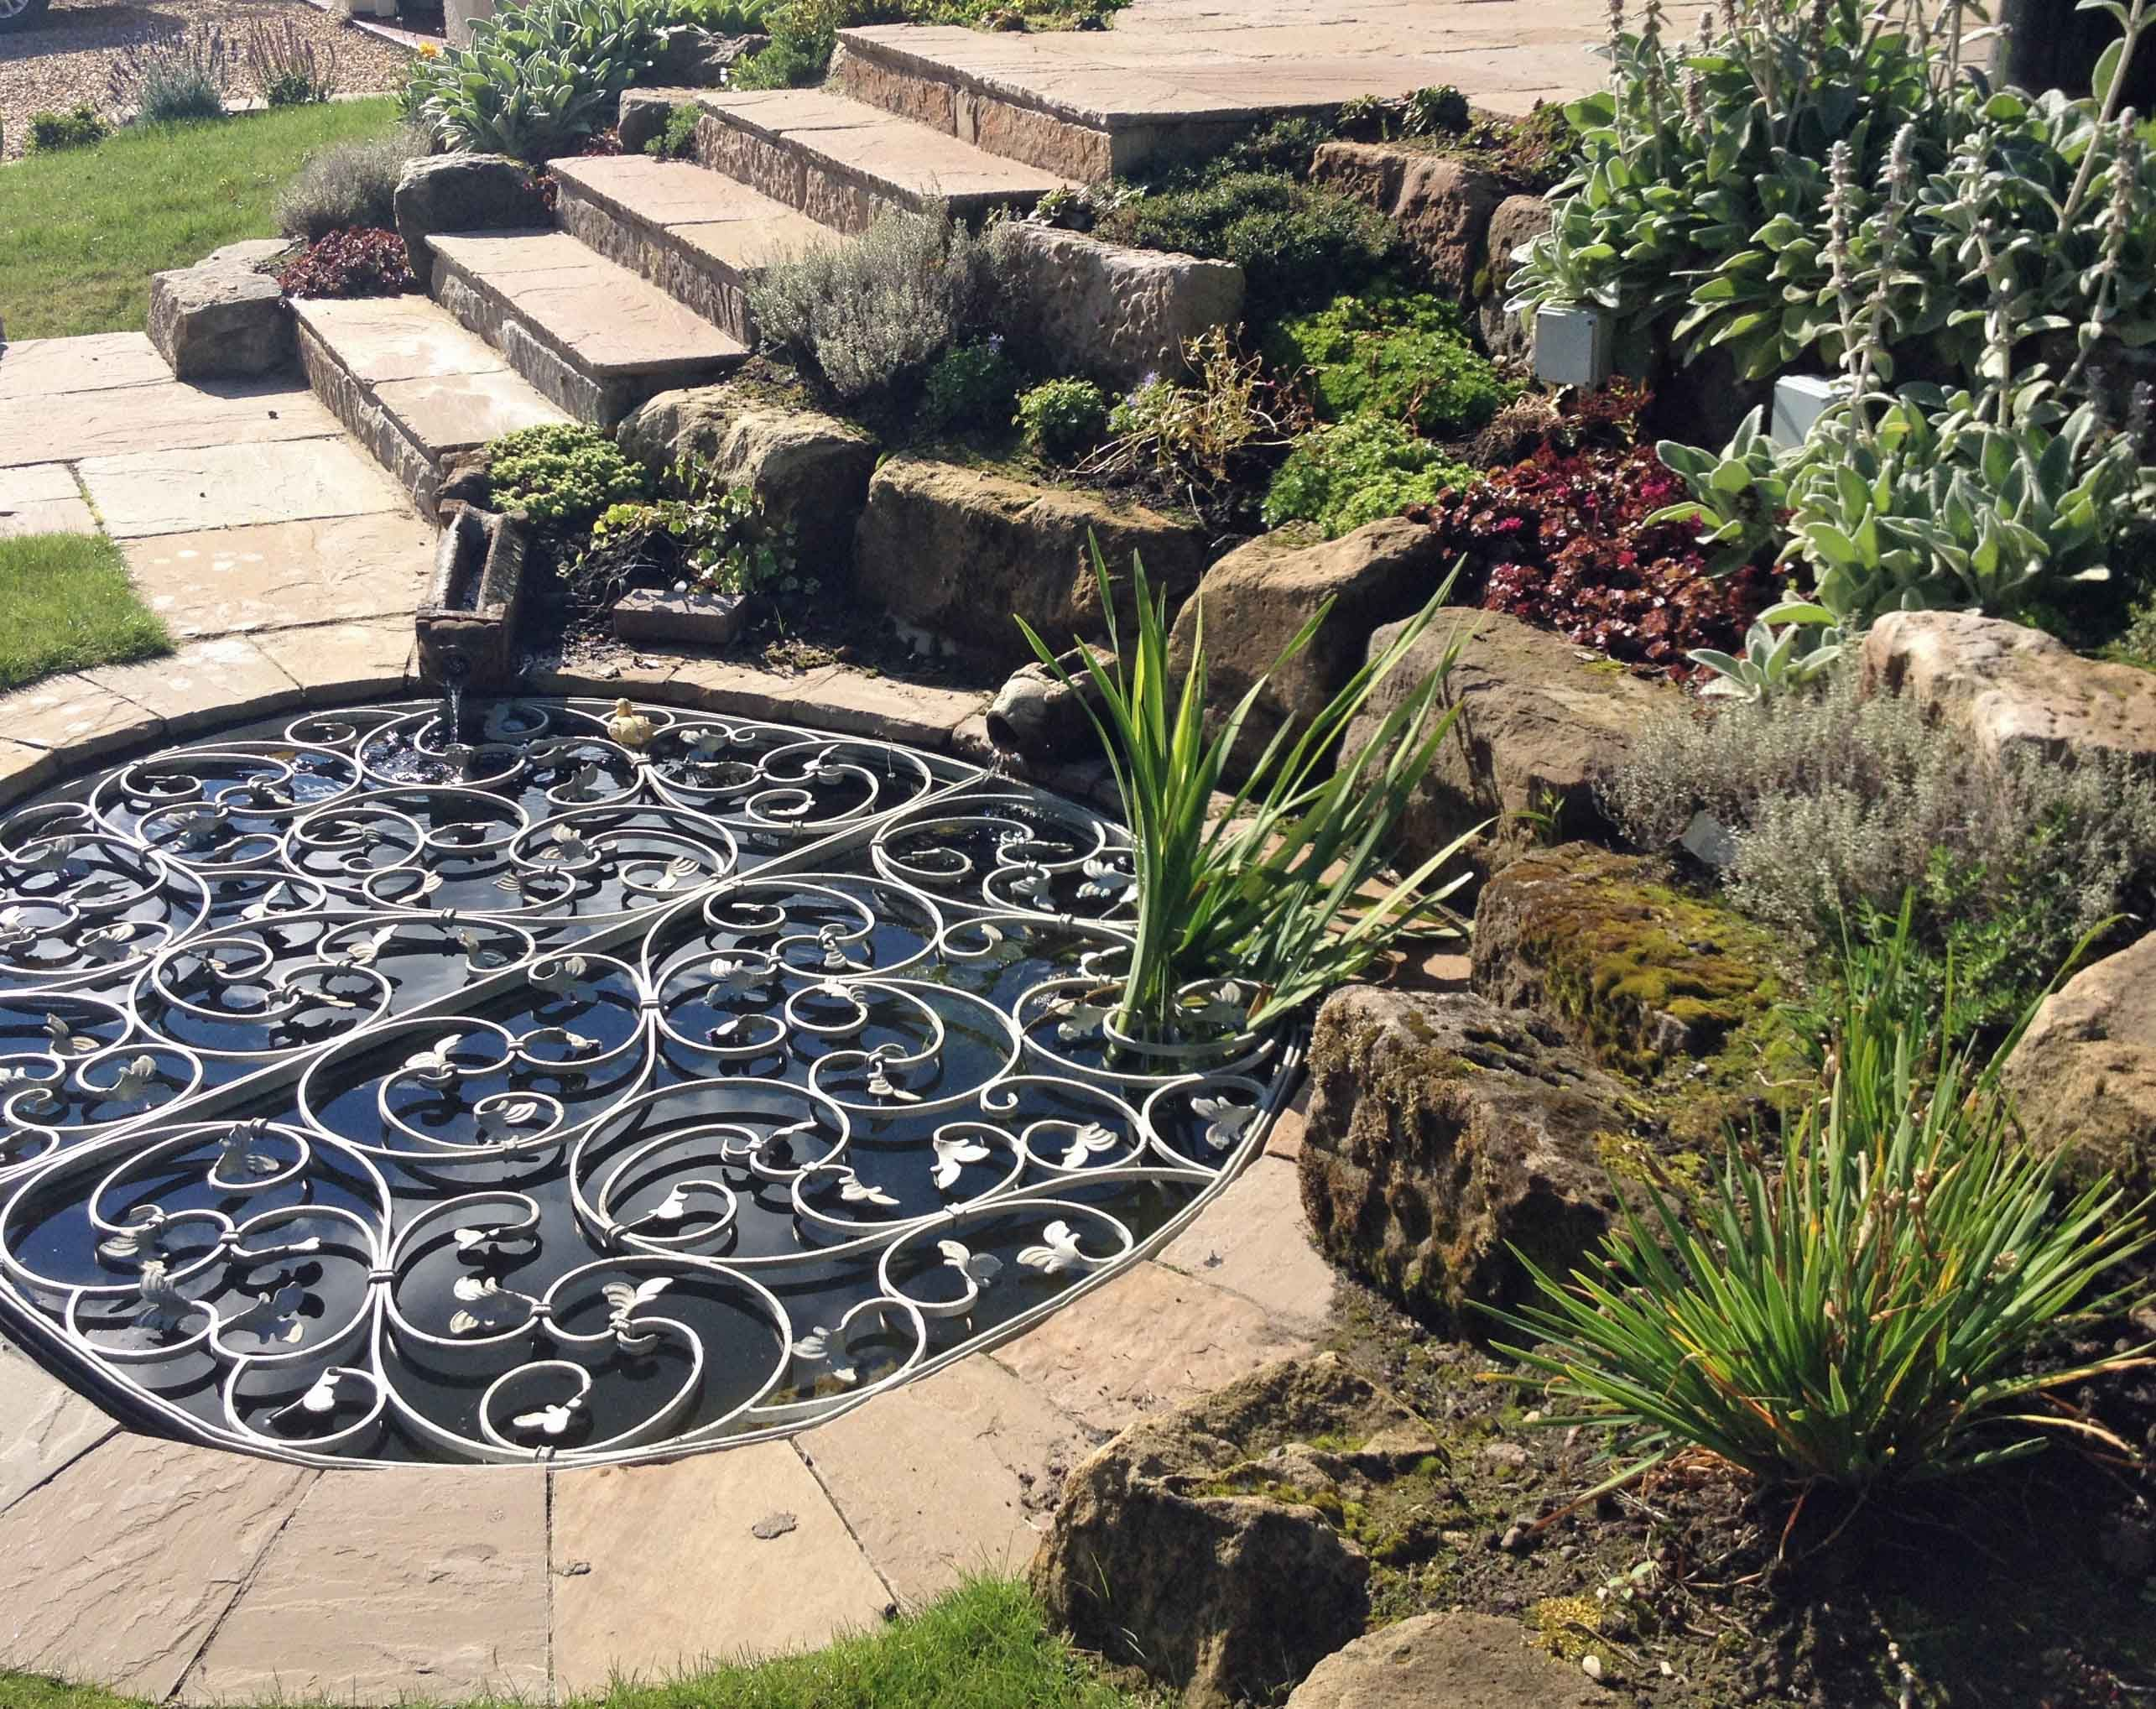 Decorative Safety Pond Grill Which We Designed And Had 400 x 300